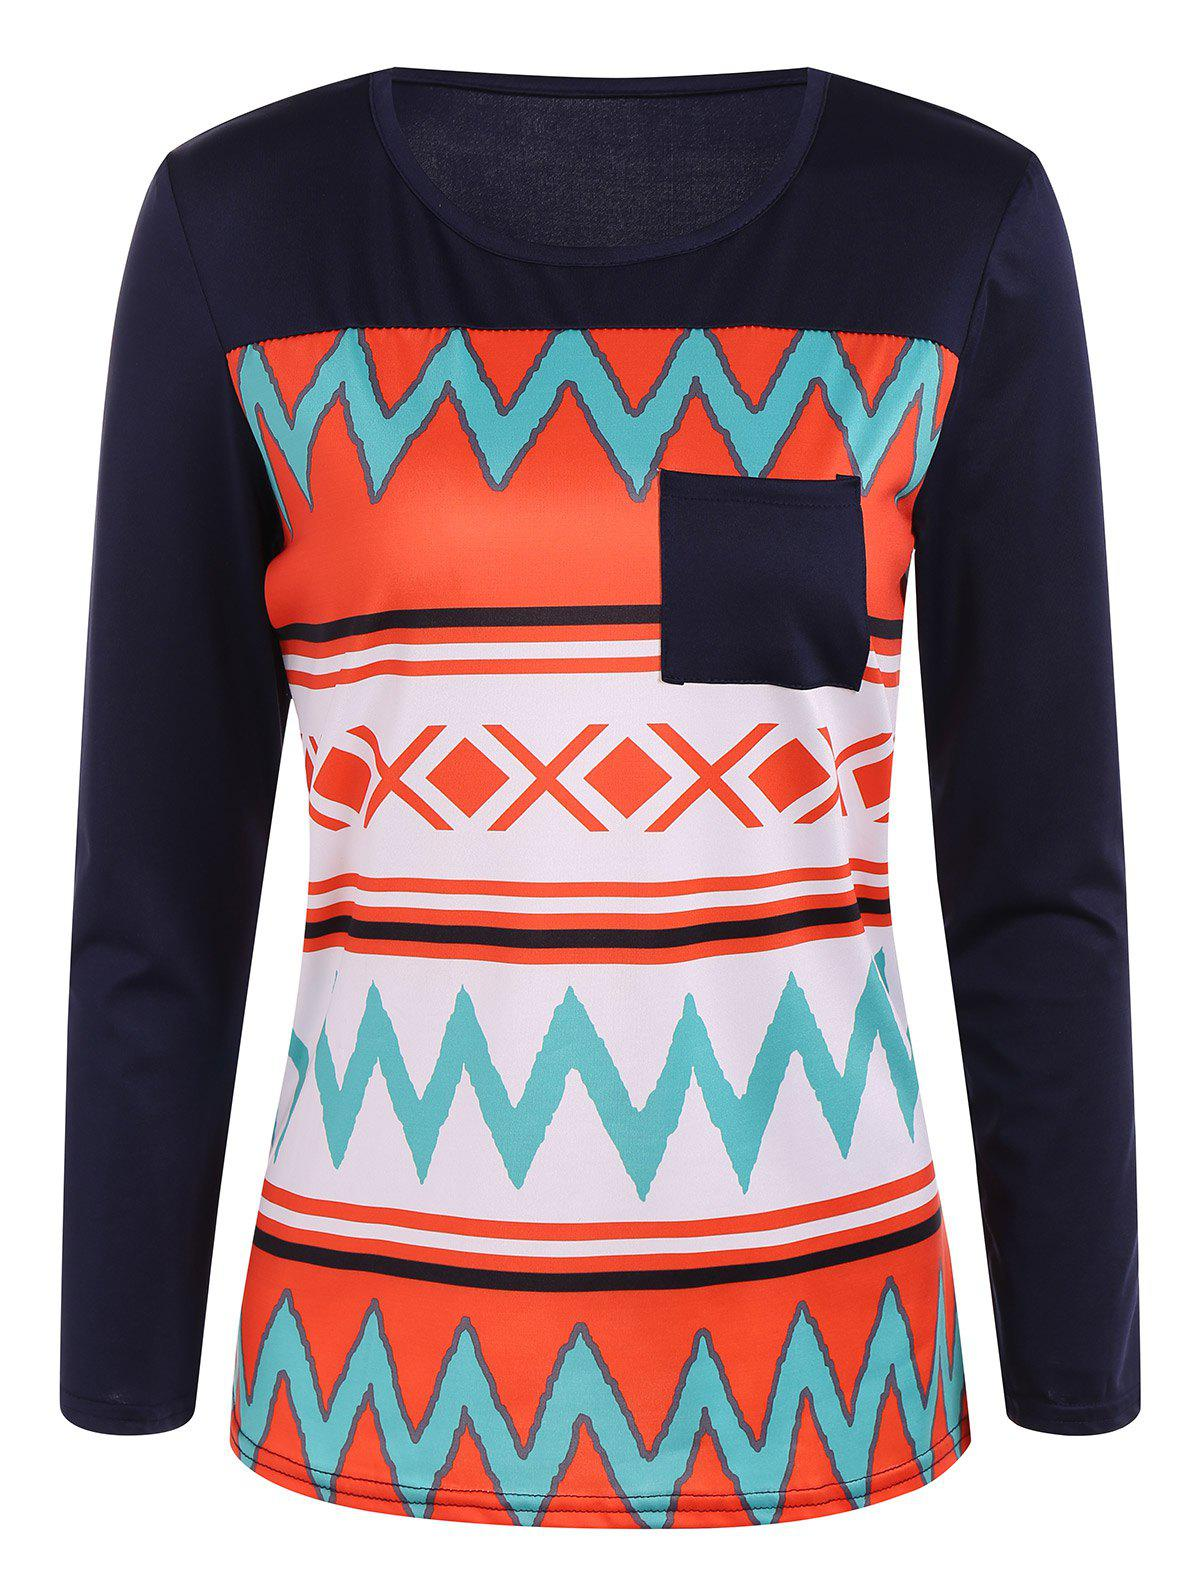 Store Zigzag Printed One Pocket T-Shirt